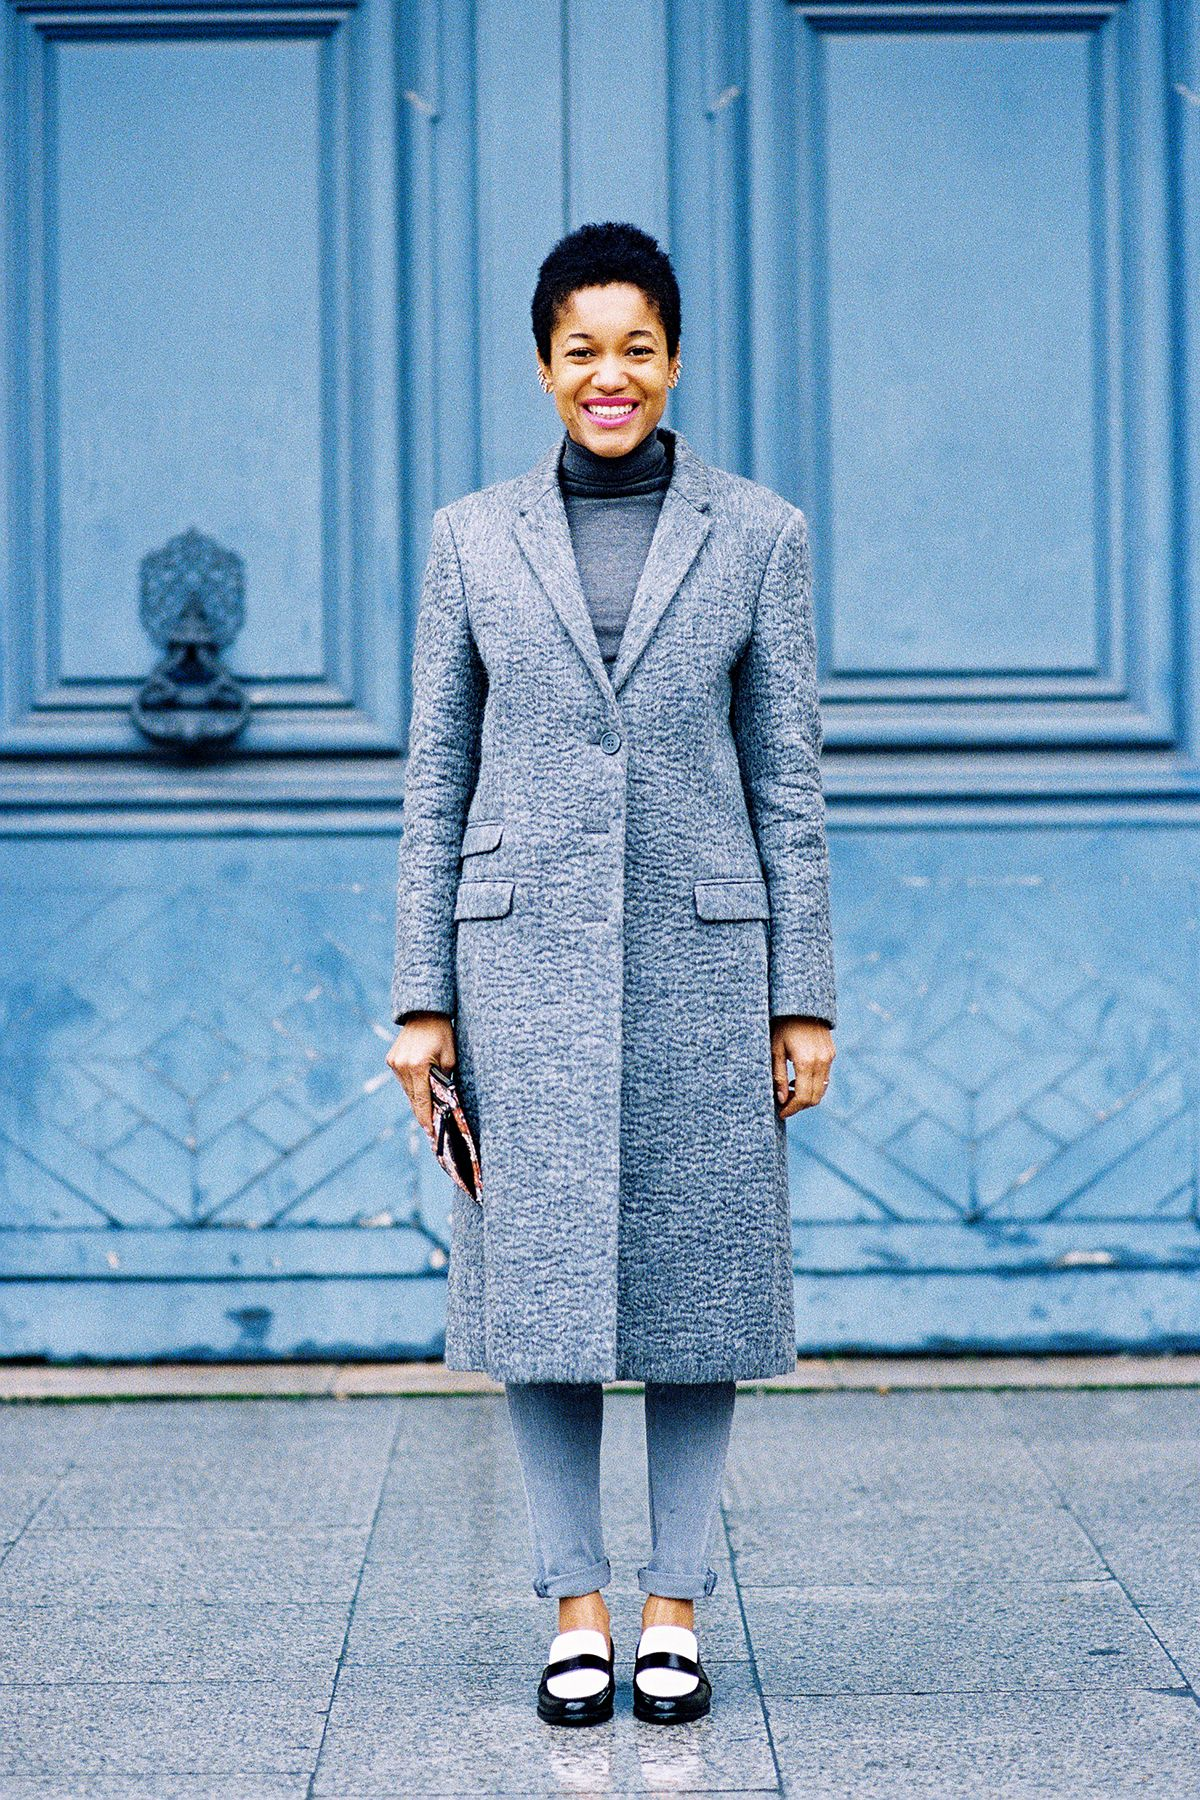 Tamu Mcpherson Blog.She S The Street Style Photographer And Influencer Behind